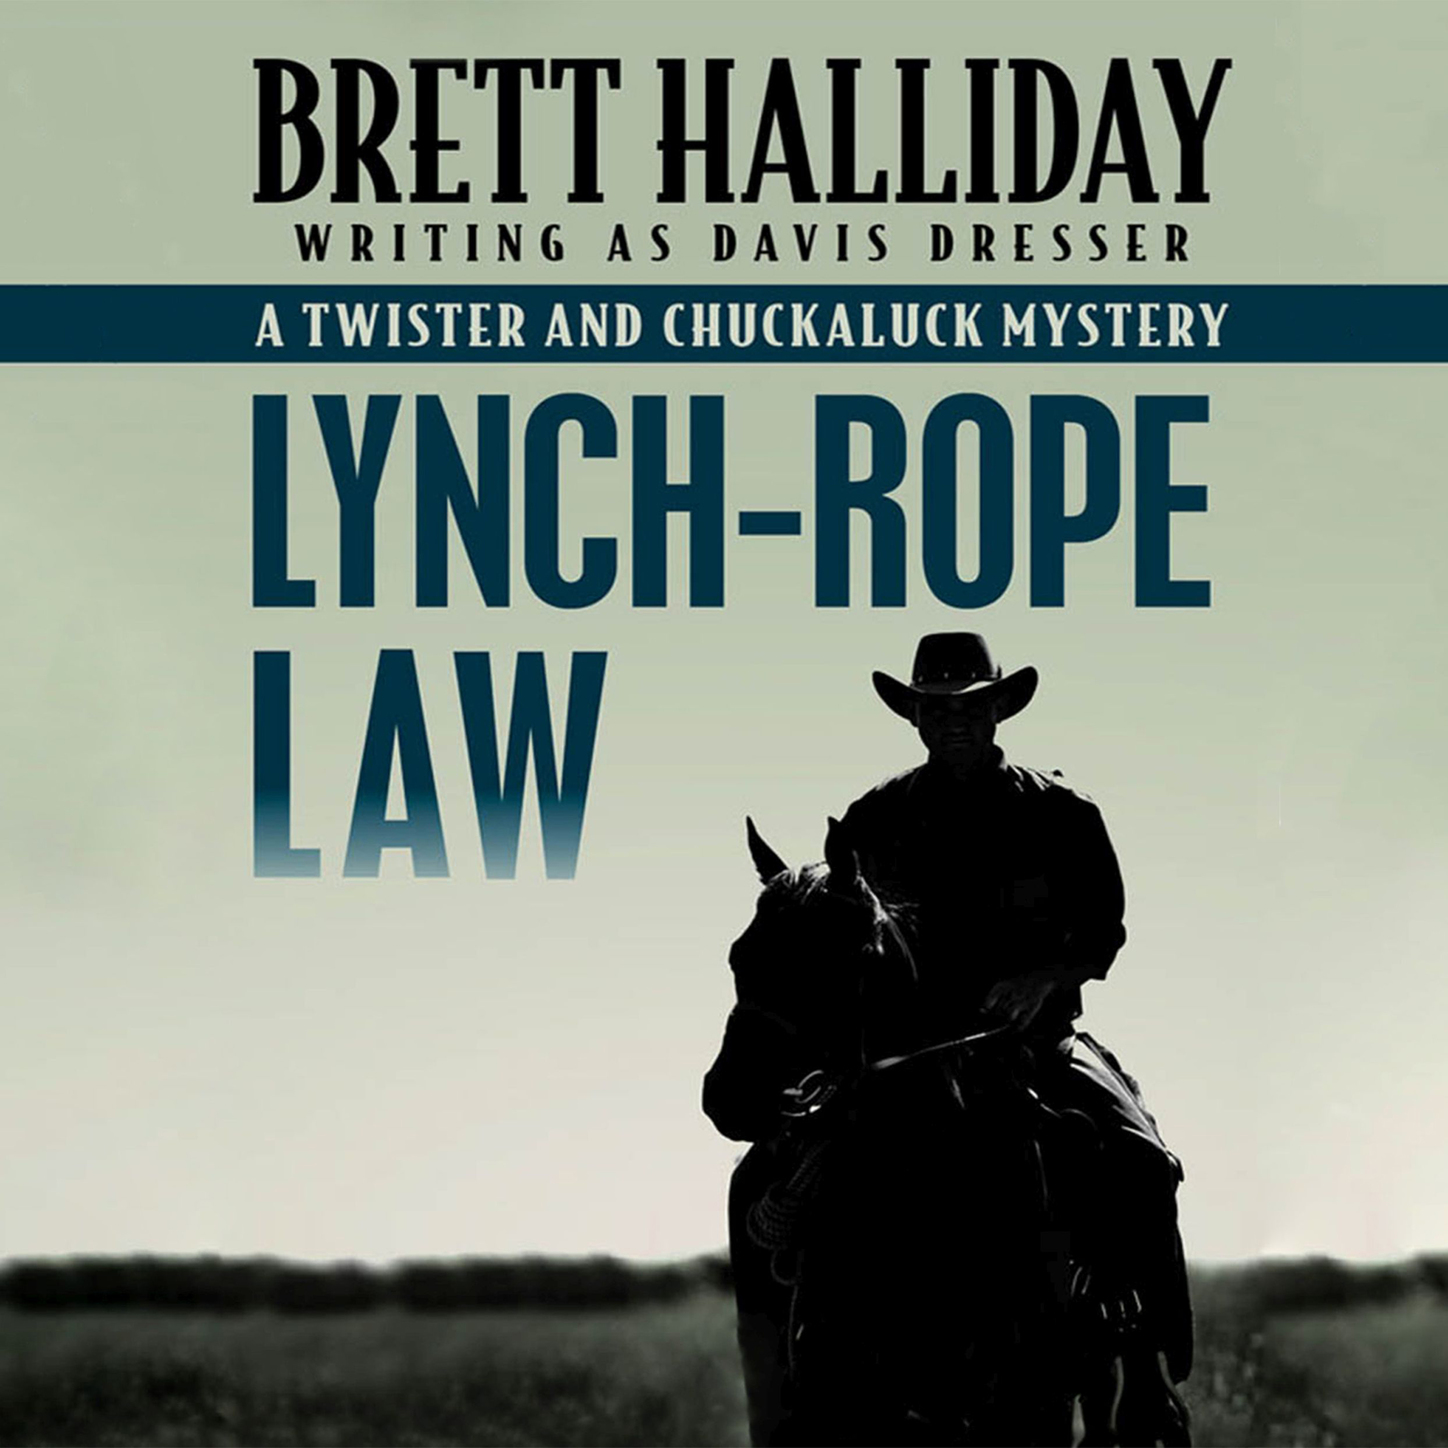 Lynch-Rope Law - The Twister and Chuckaluck Mysteries 3 (Unabridged) фото